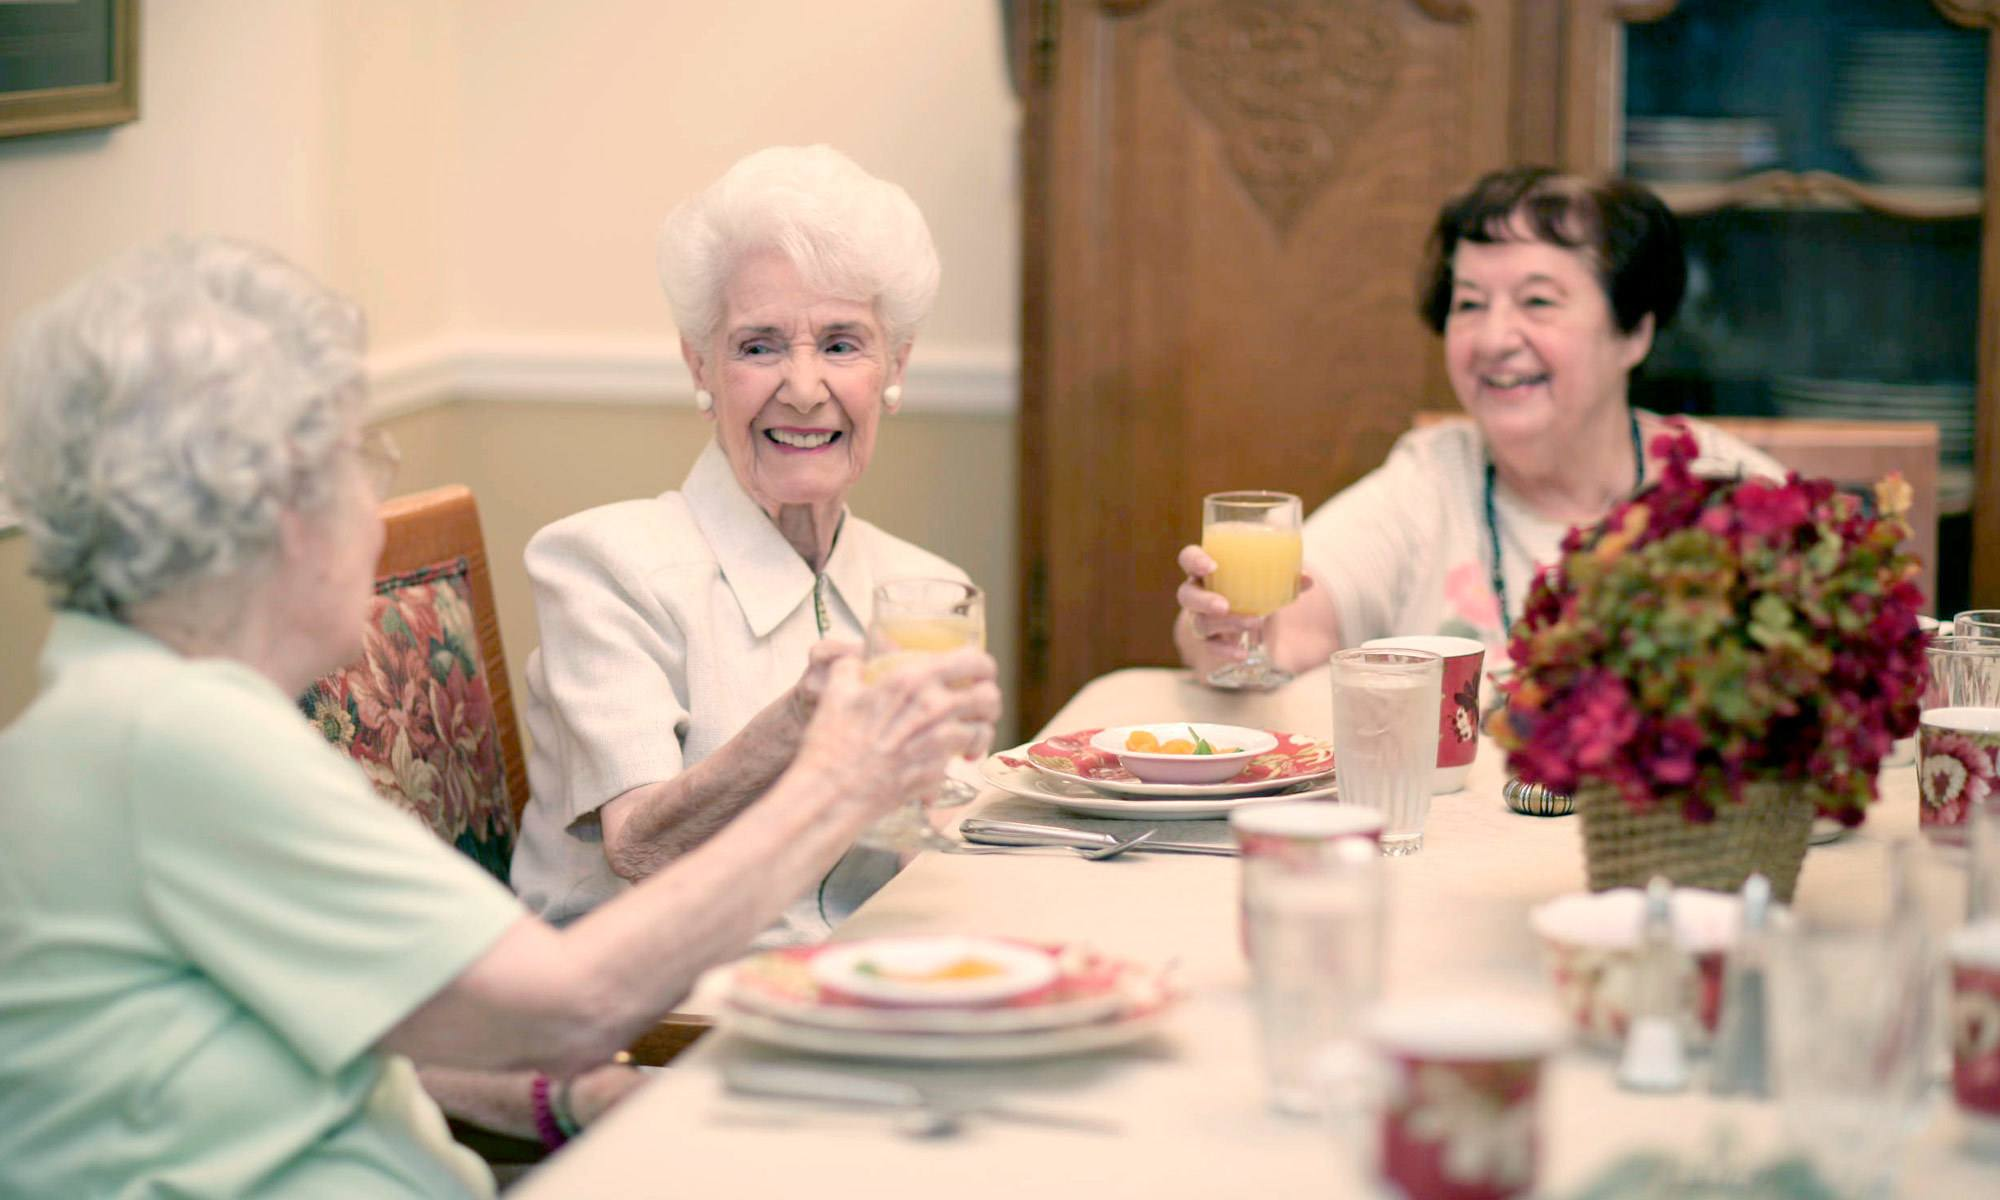 Exquisite senior living facility located in Tallahassee